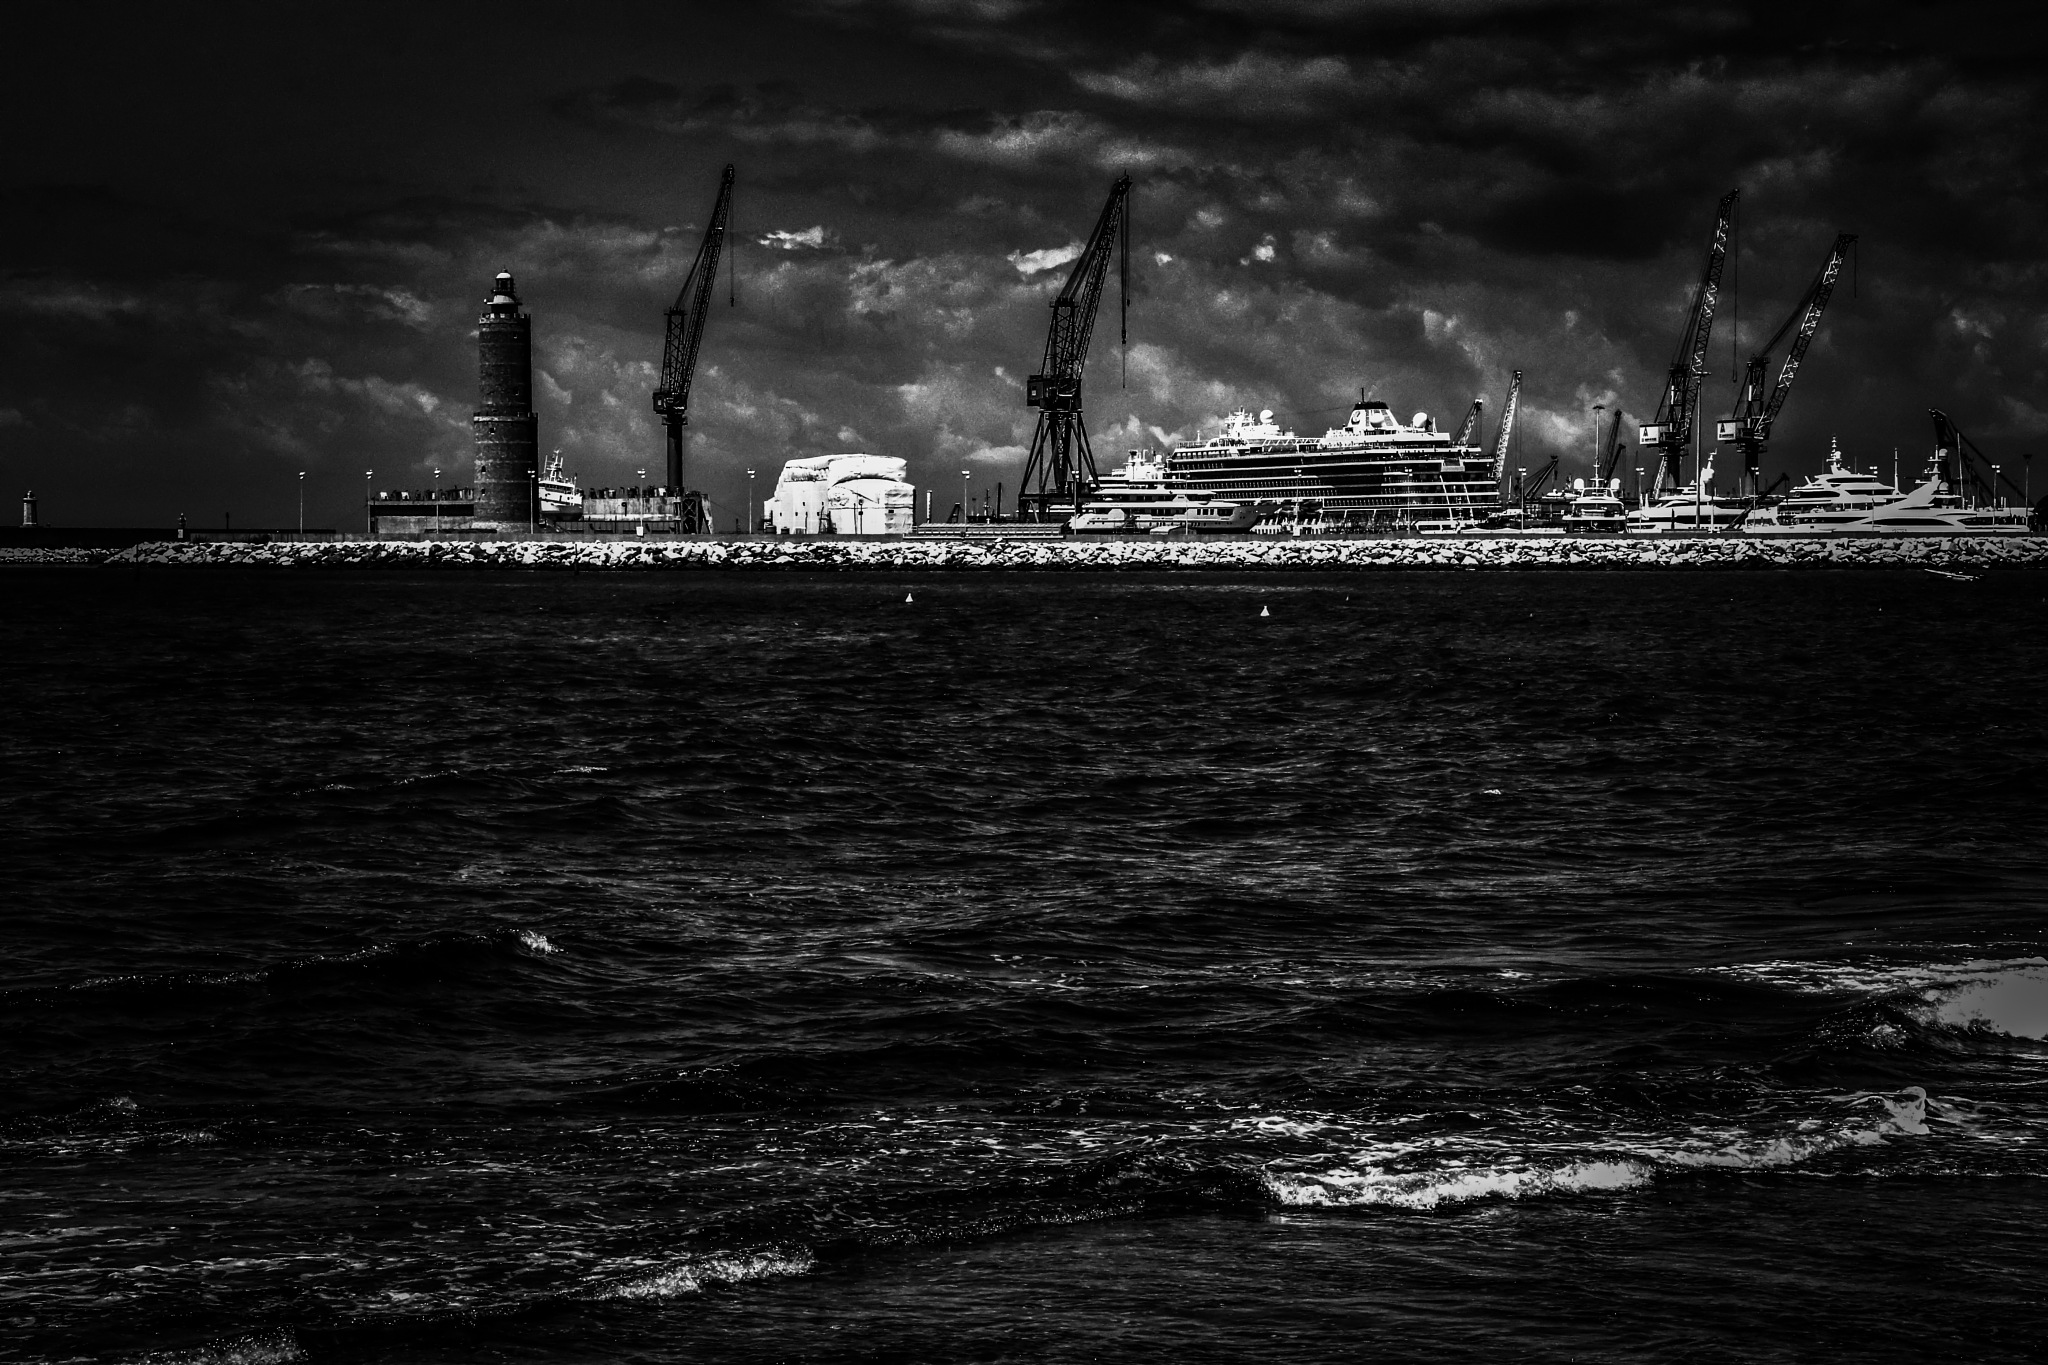 The harbor by Bambas Michael